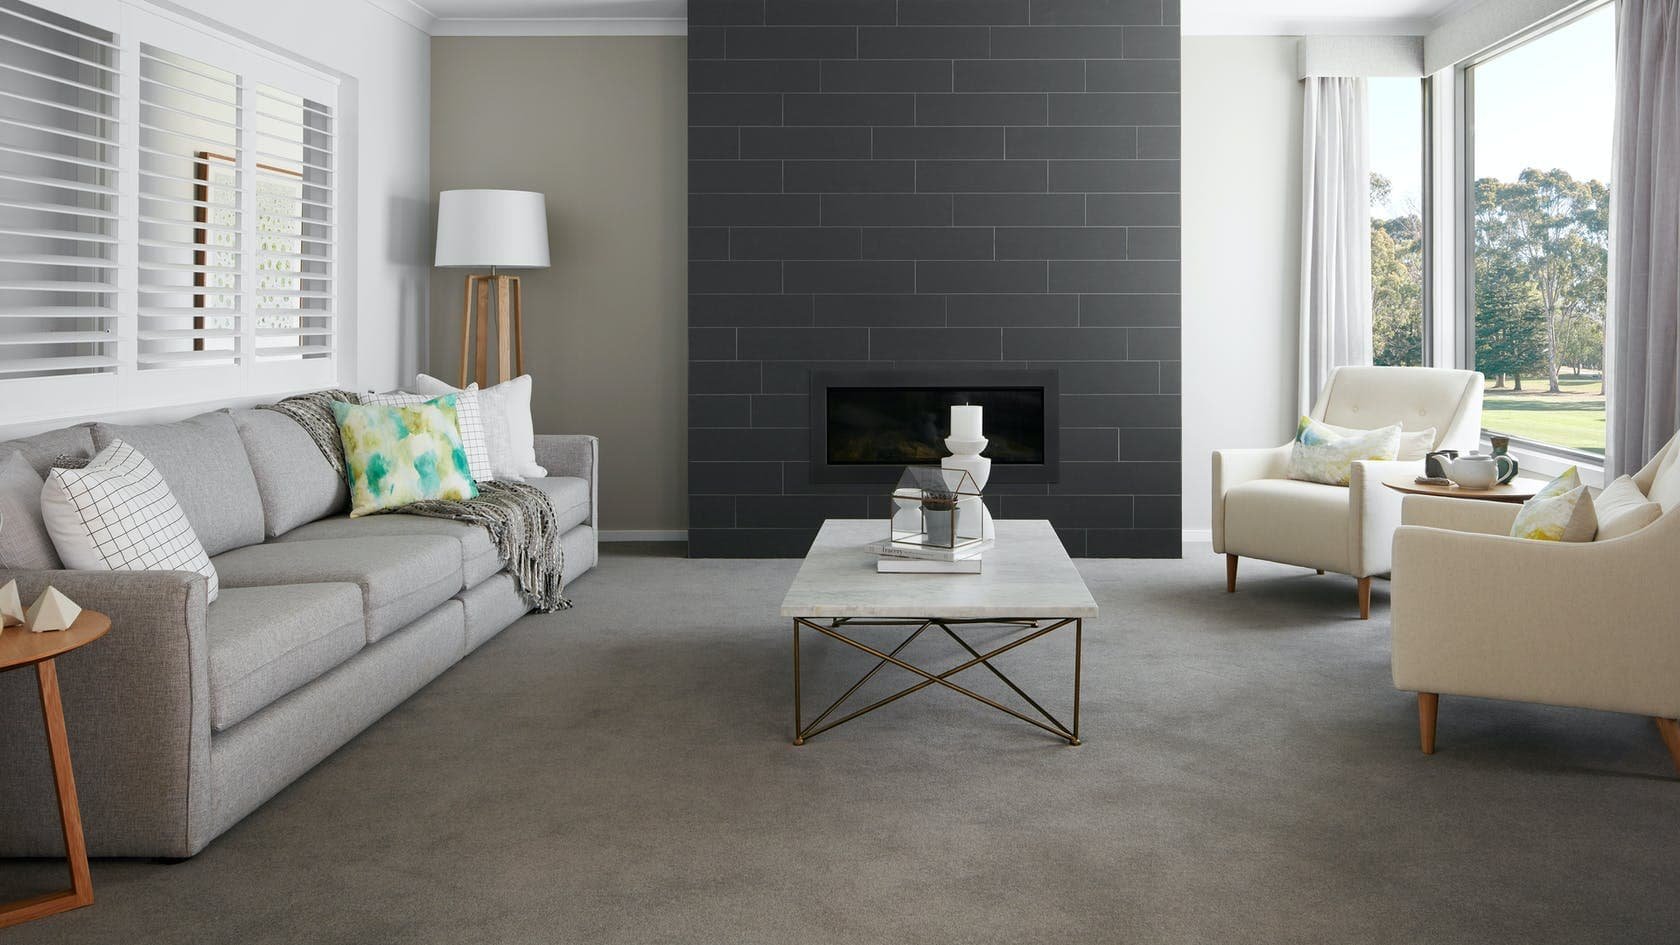 formal living room design with black tile fireplace and conversation pit